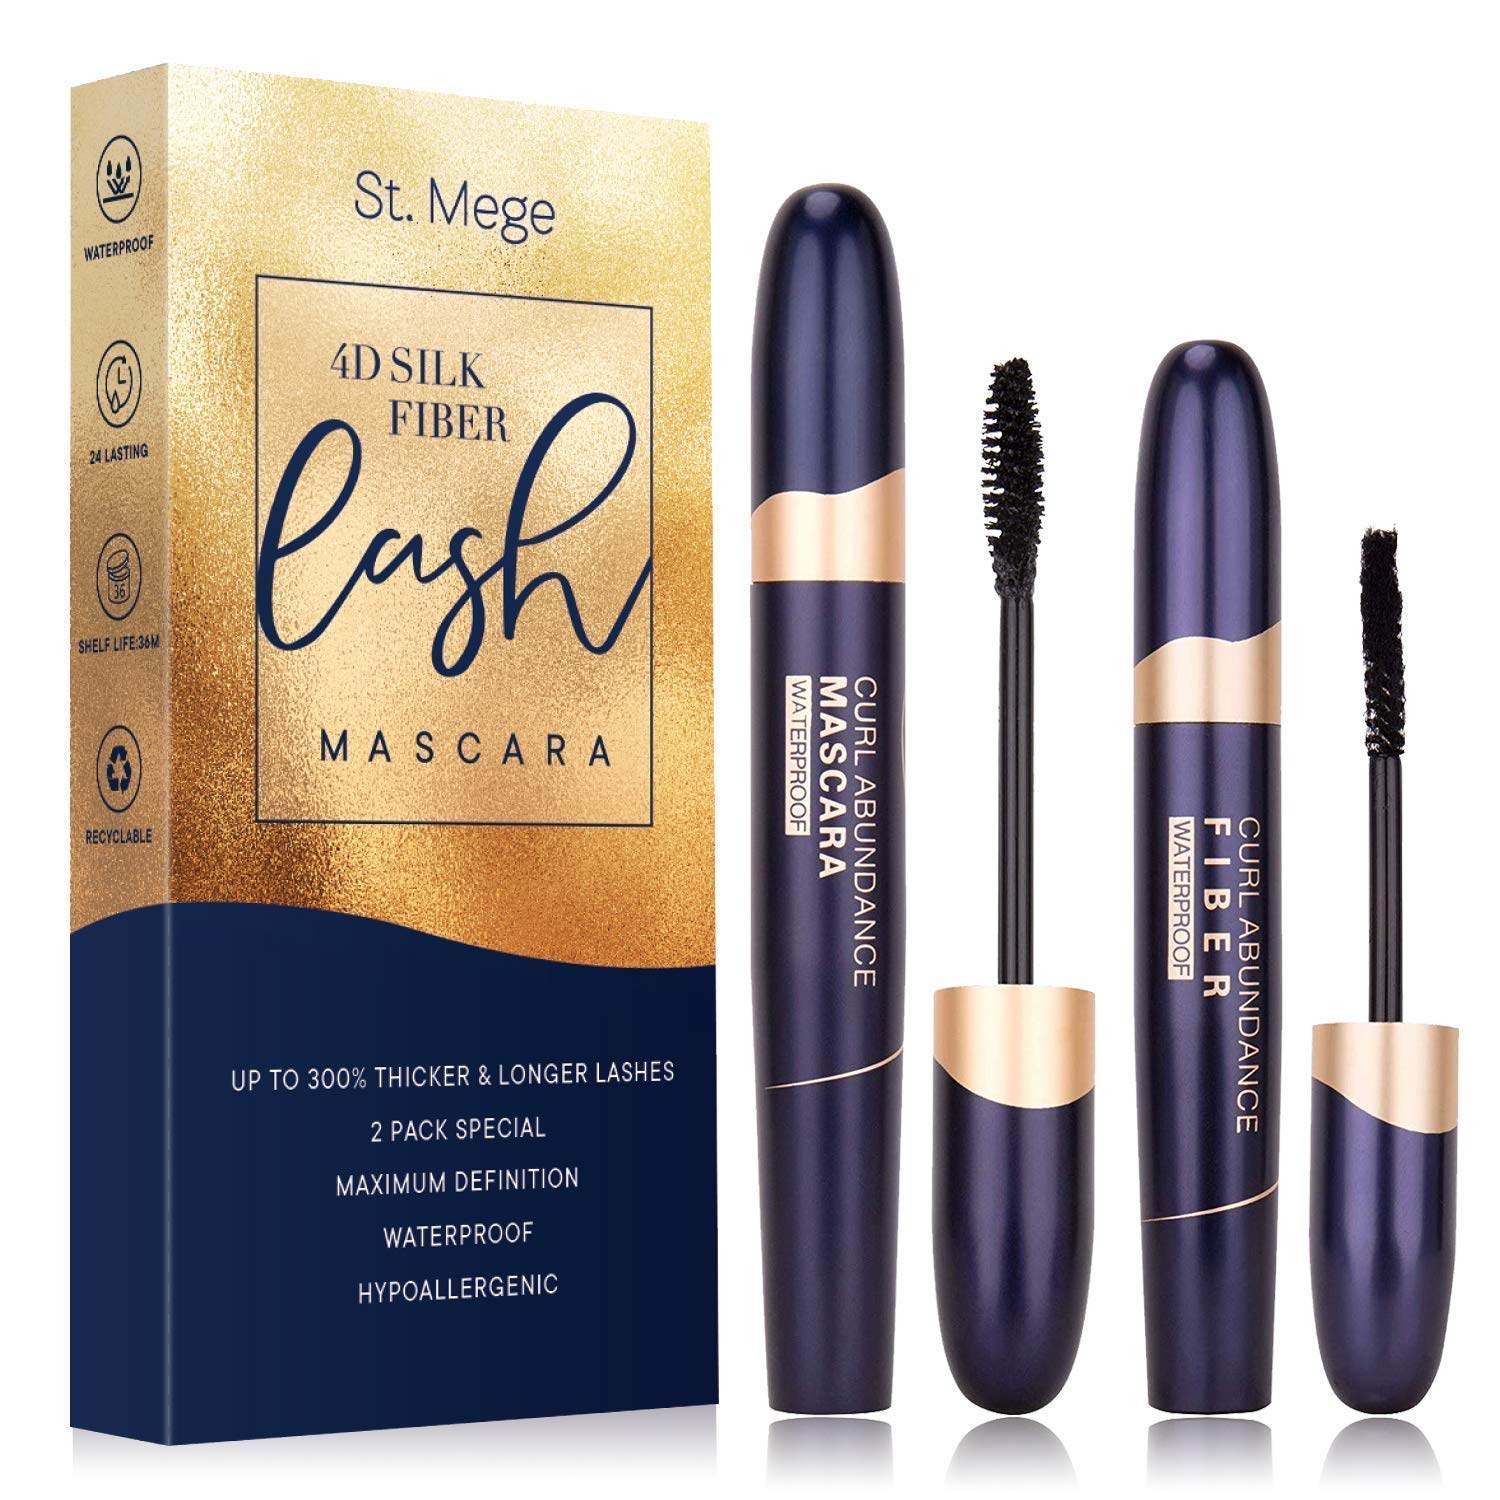 St. Mege 4D Silk Fiber Lash Mascara & Fiber 2-in-1 Set, Best for Thickening and Lengthening, Waterproof and Smudge-Proof and Hypoallergenic - Thicker and Longer Lashes